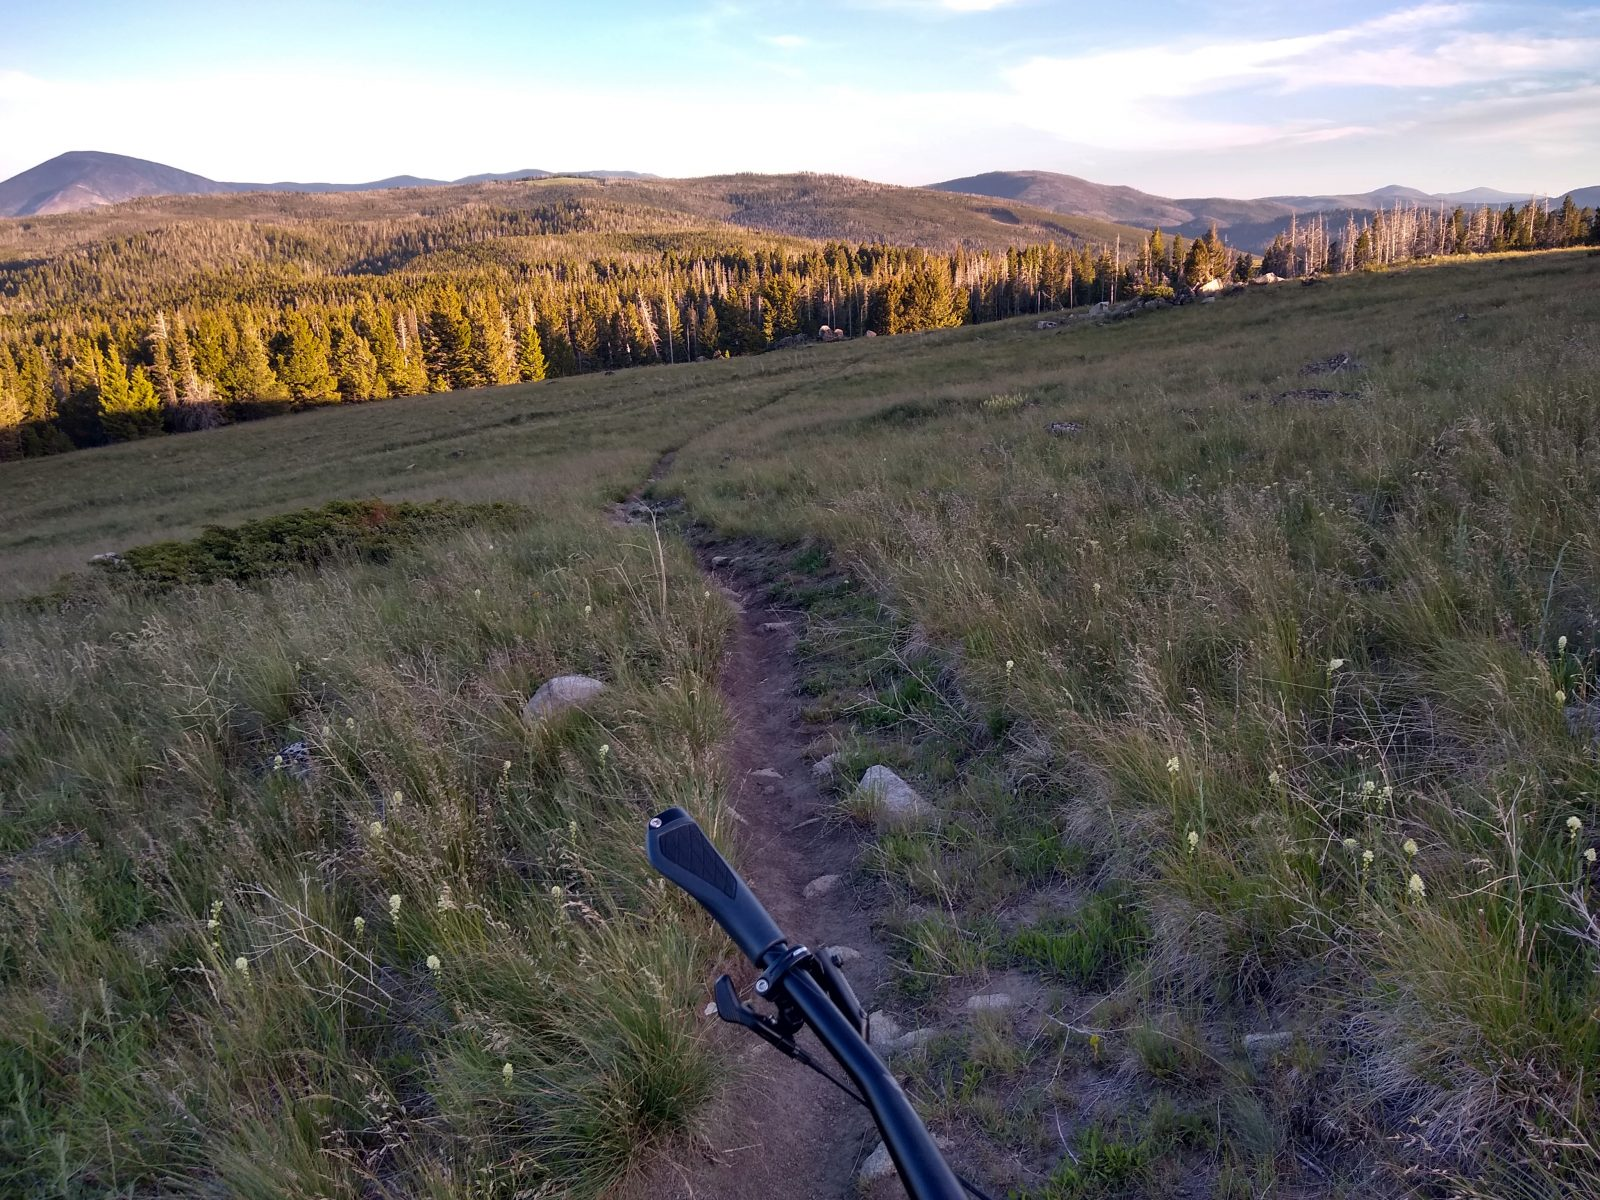 Continental Divide Trail - June 26, 2020